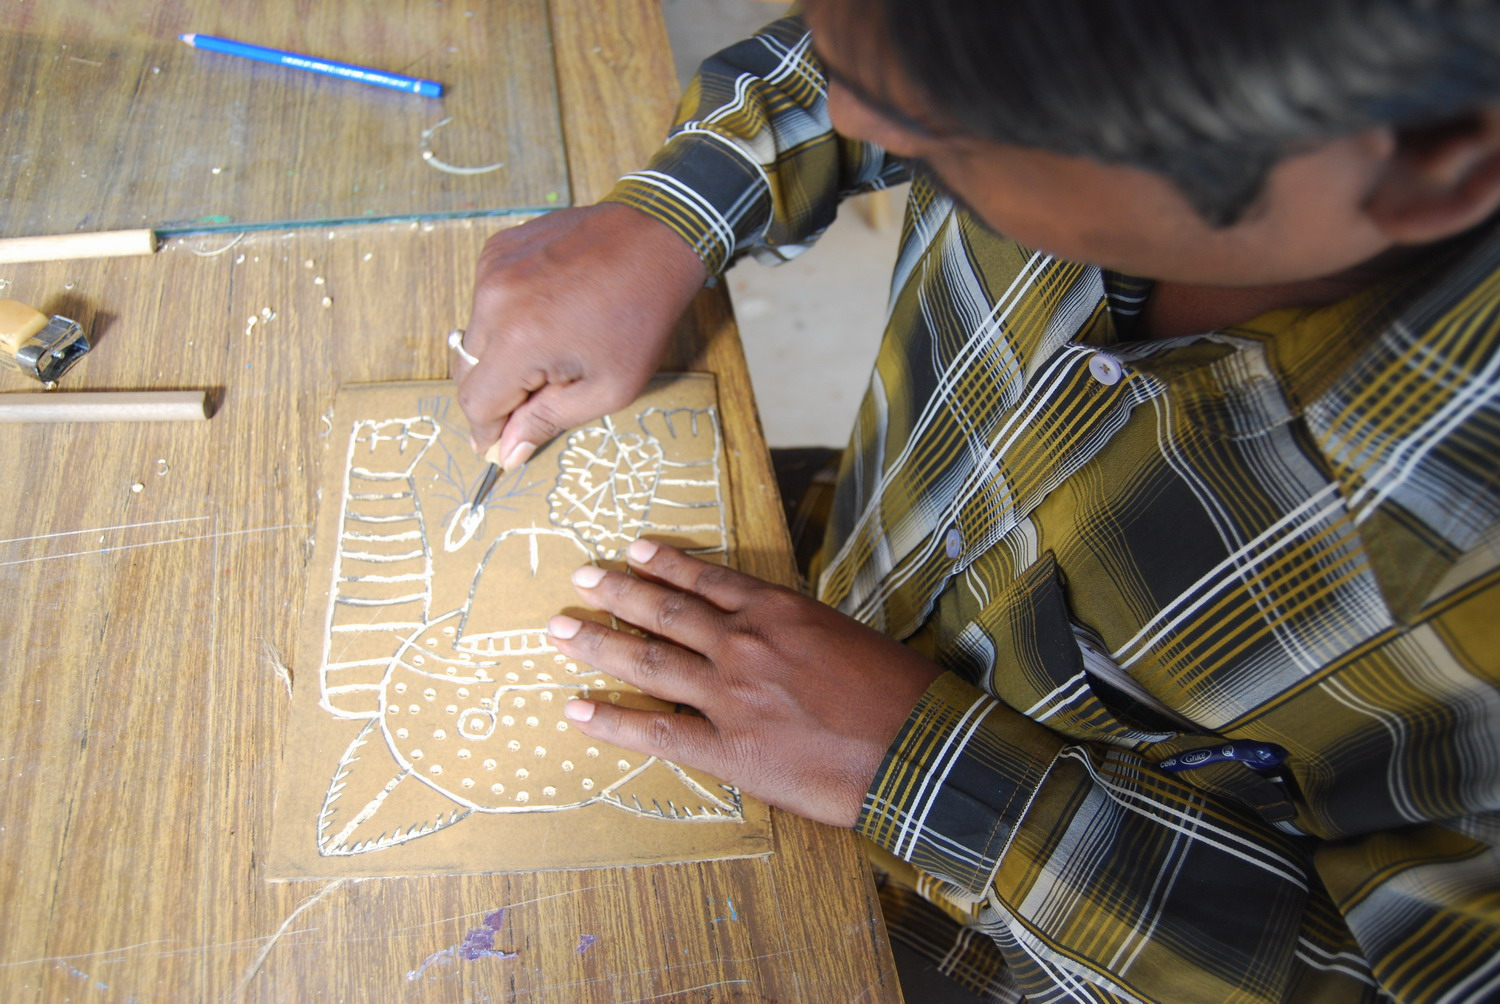 Mantu Chitrakar working on a lino cut print.